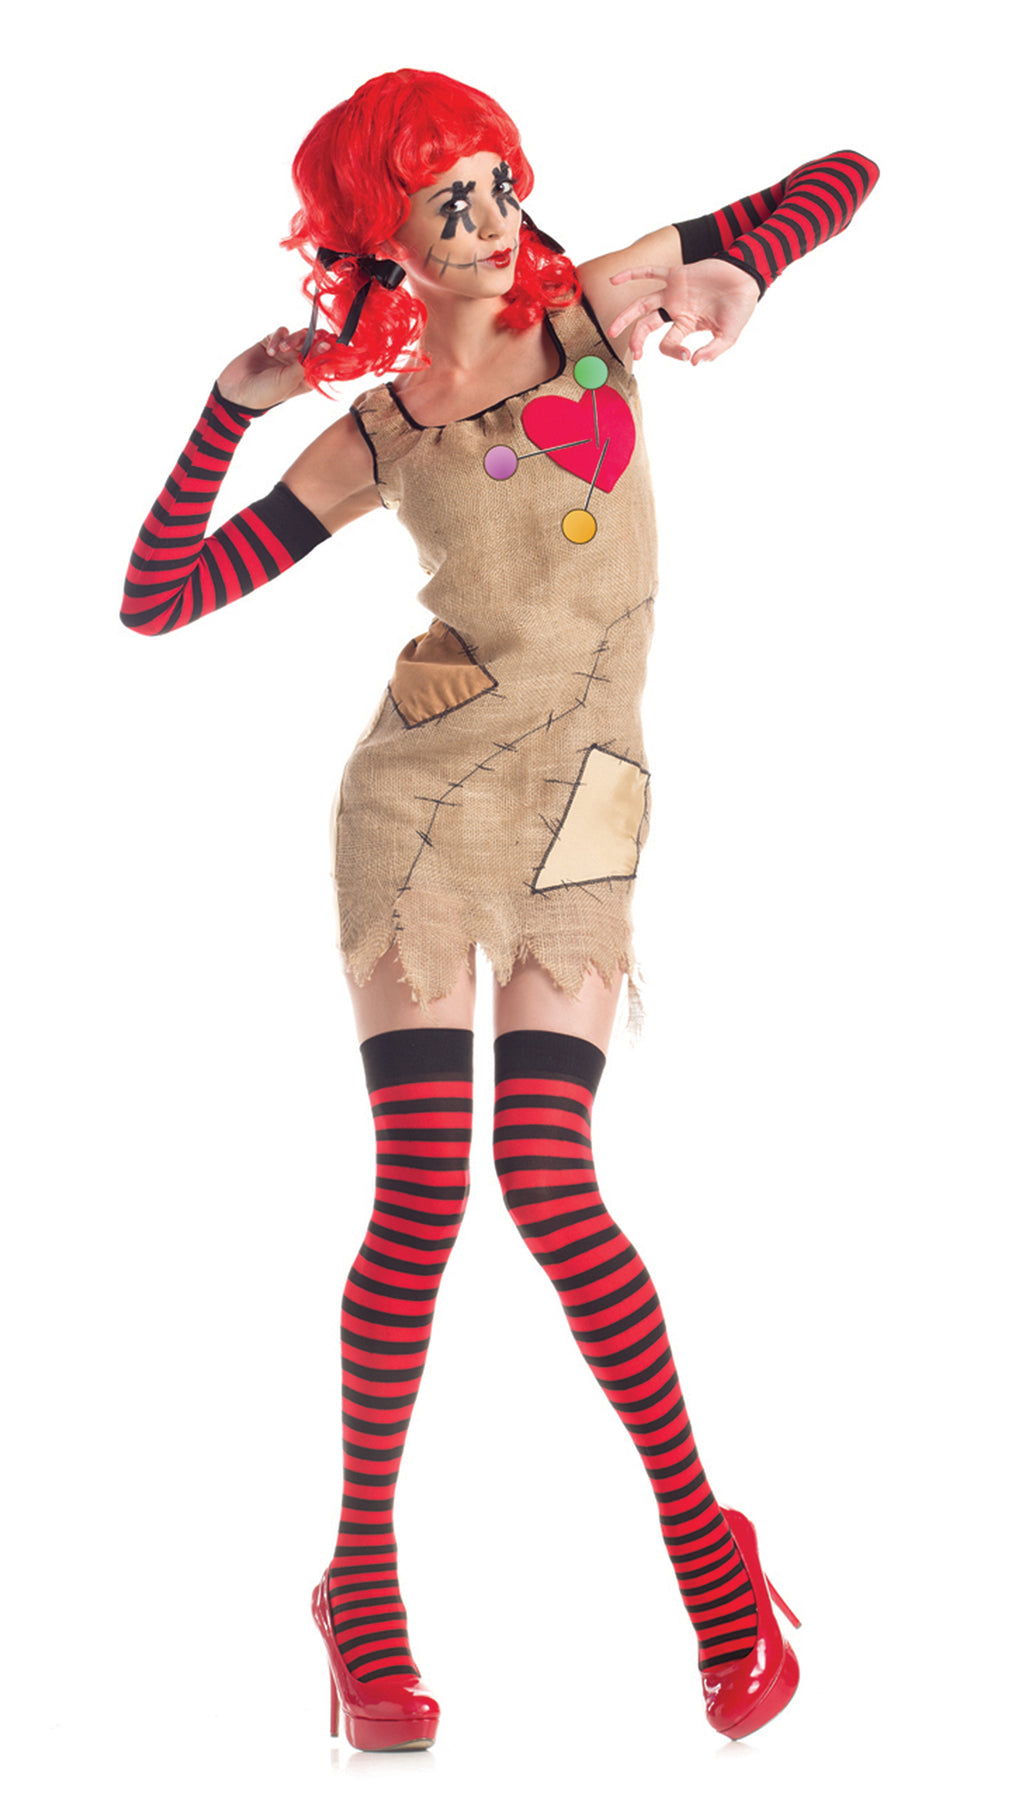 Party King Women's Voodoo Doll Costume Womens Adult Sized Costumes - Nastassy